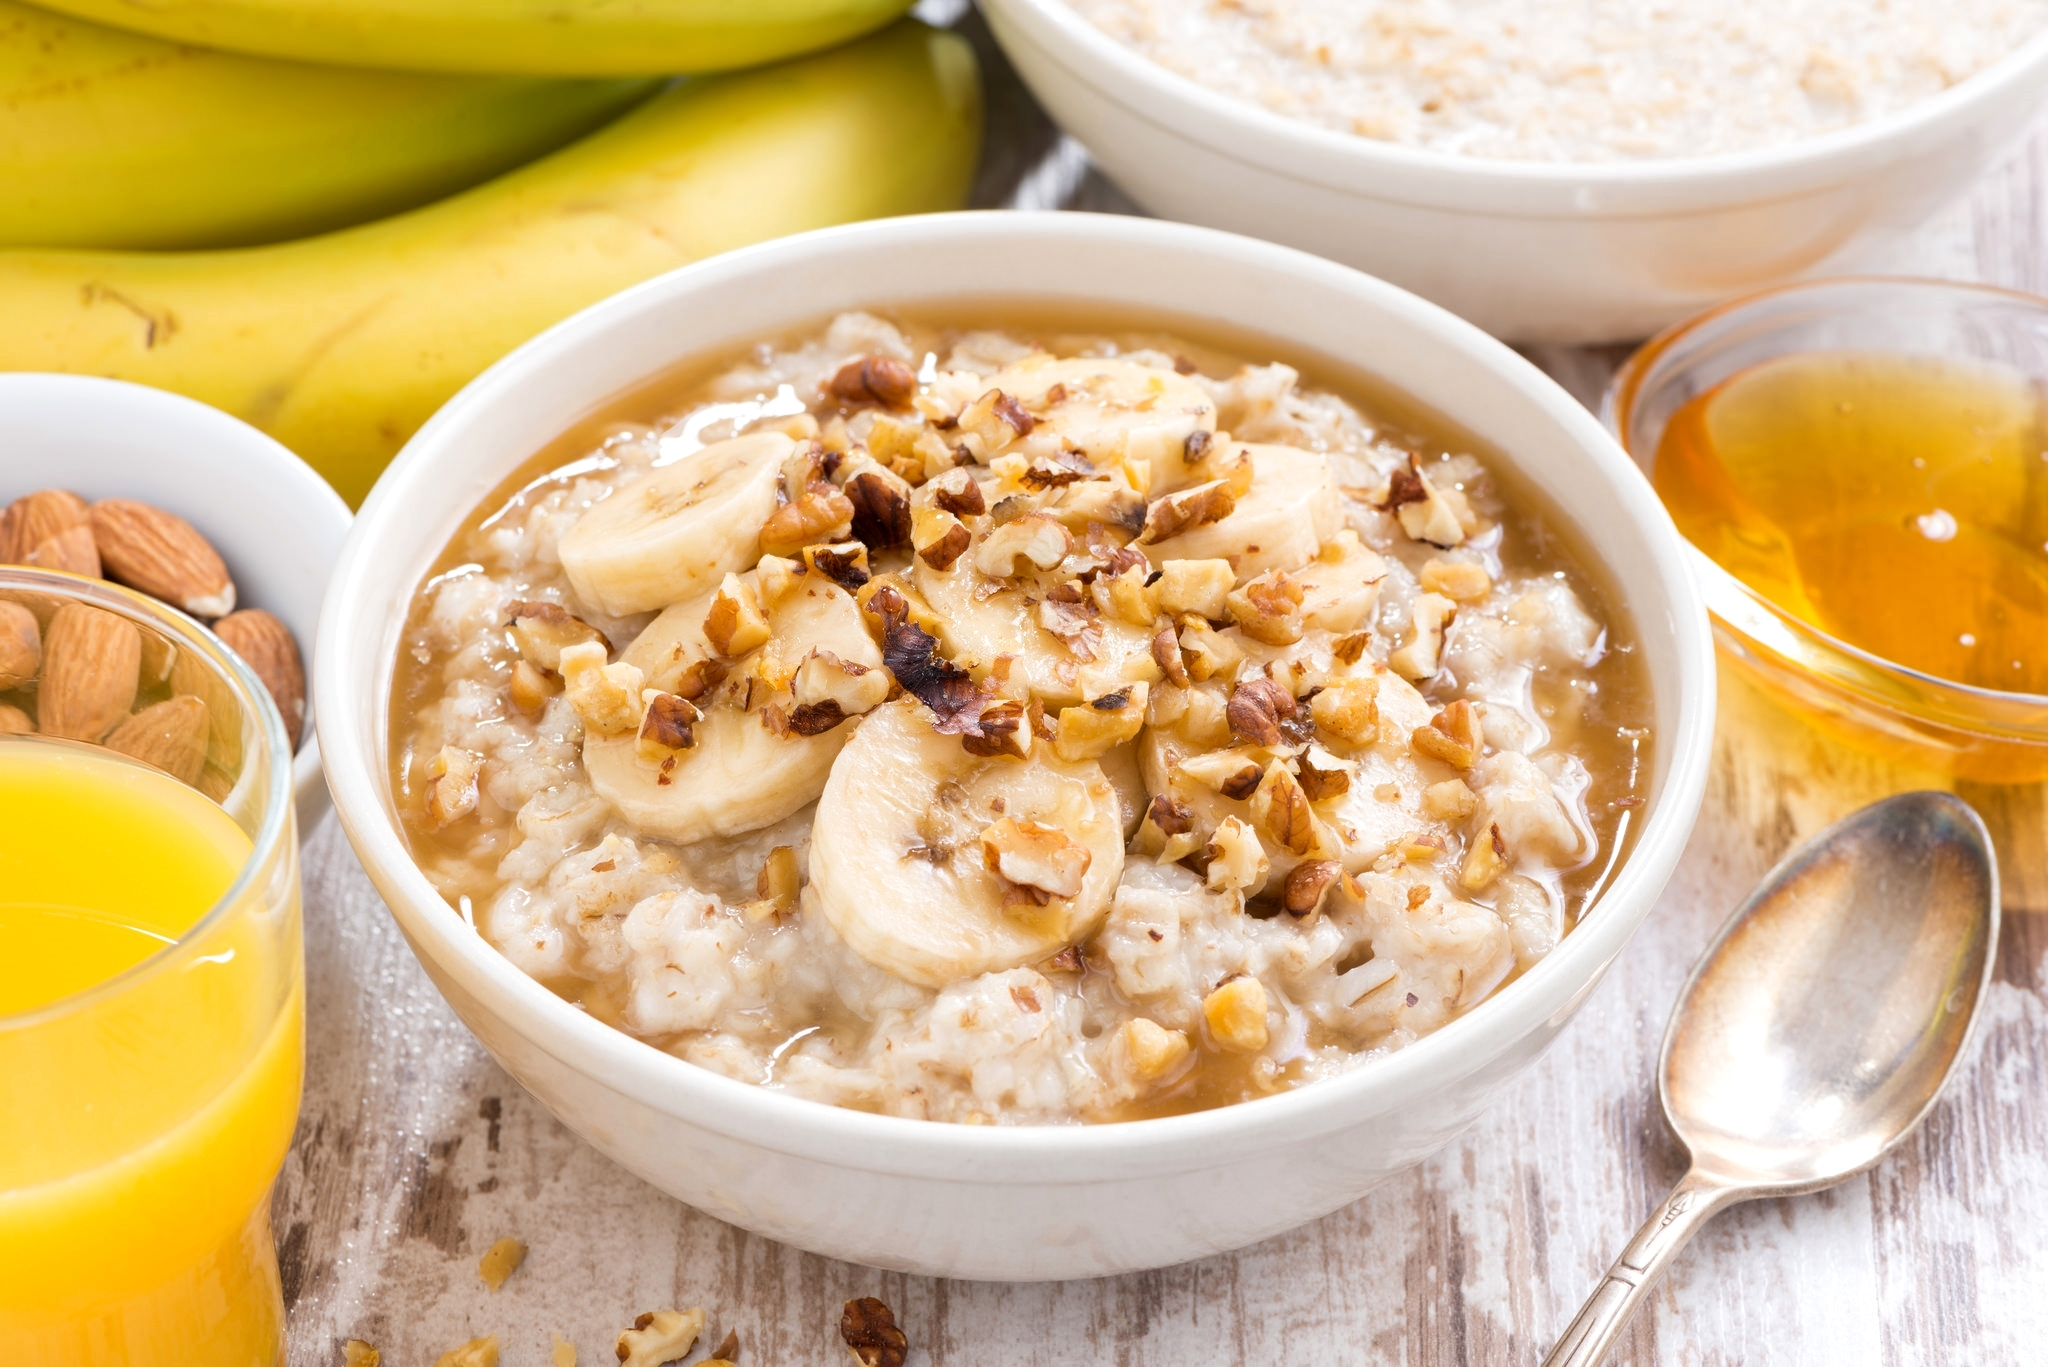 Top 10 Healthiest Snacks You Can Eat: Oatmeal